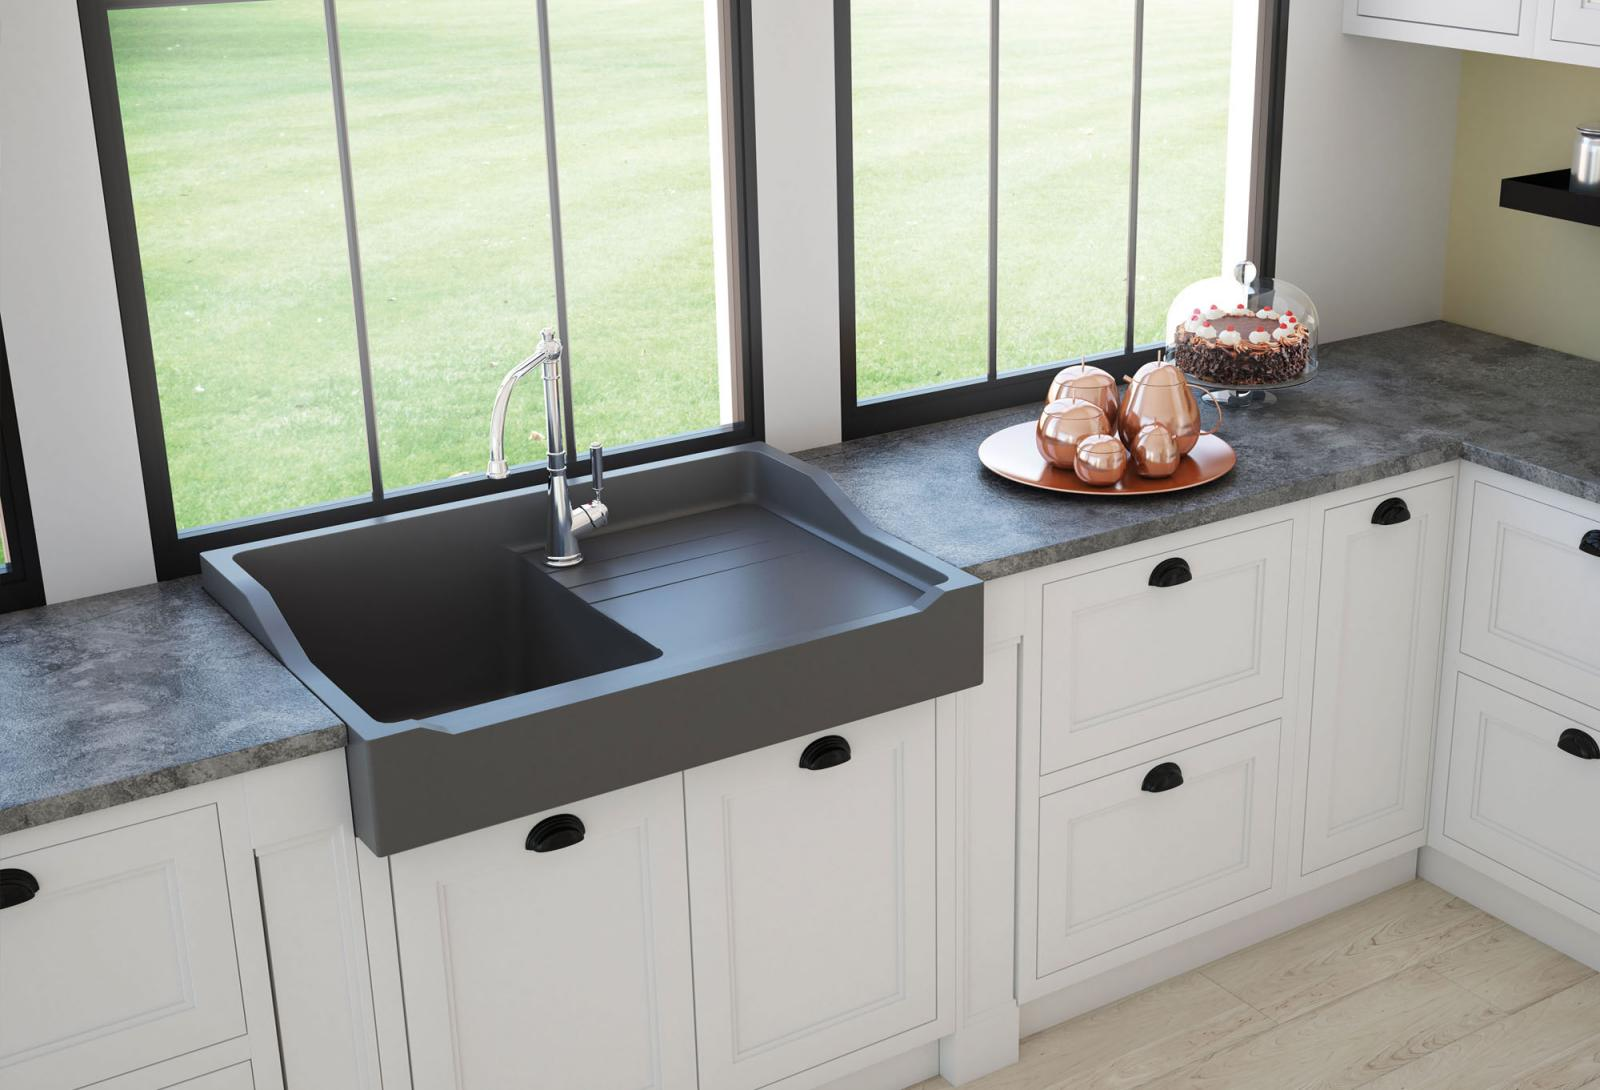 High-quality sink François 1er granit titanium gray - one bowl ambiente